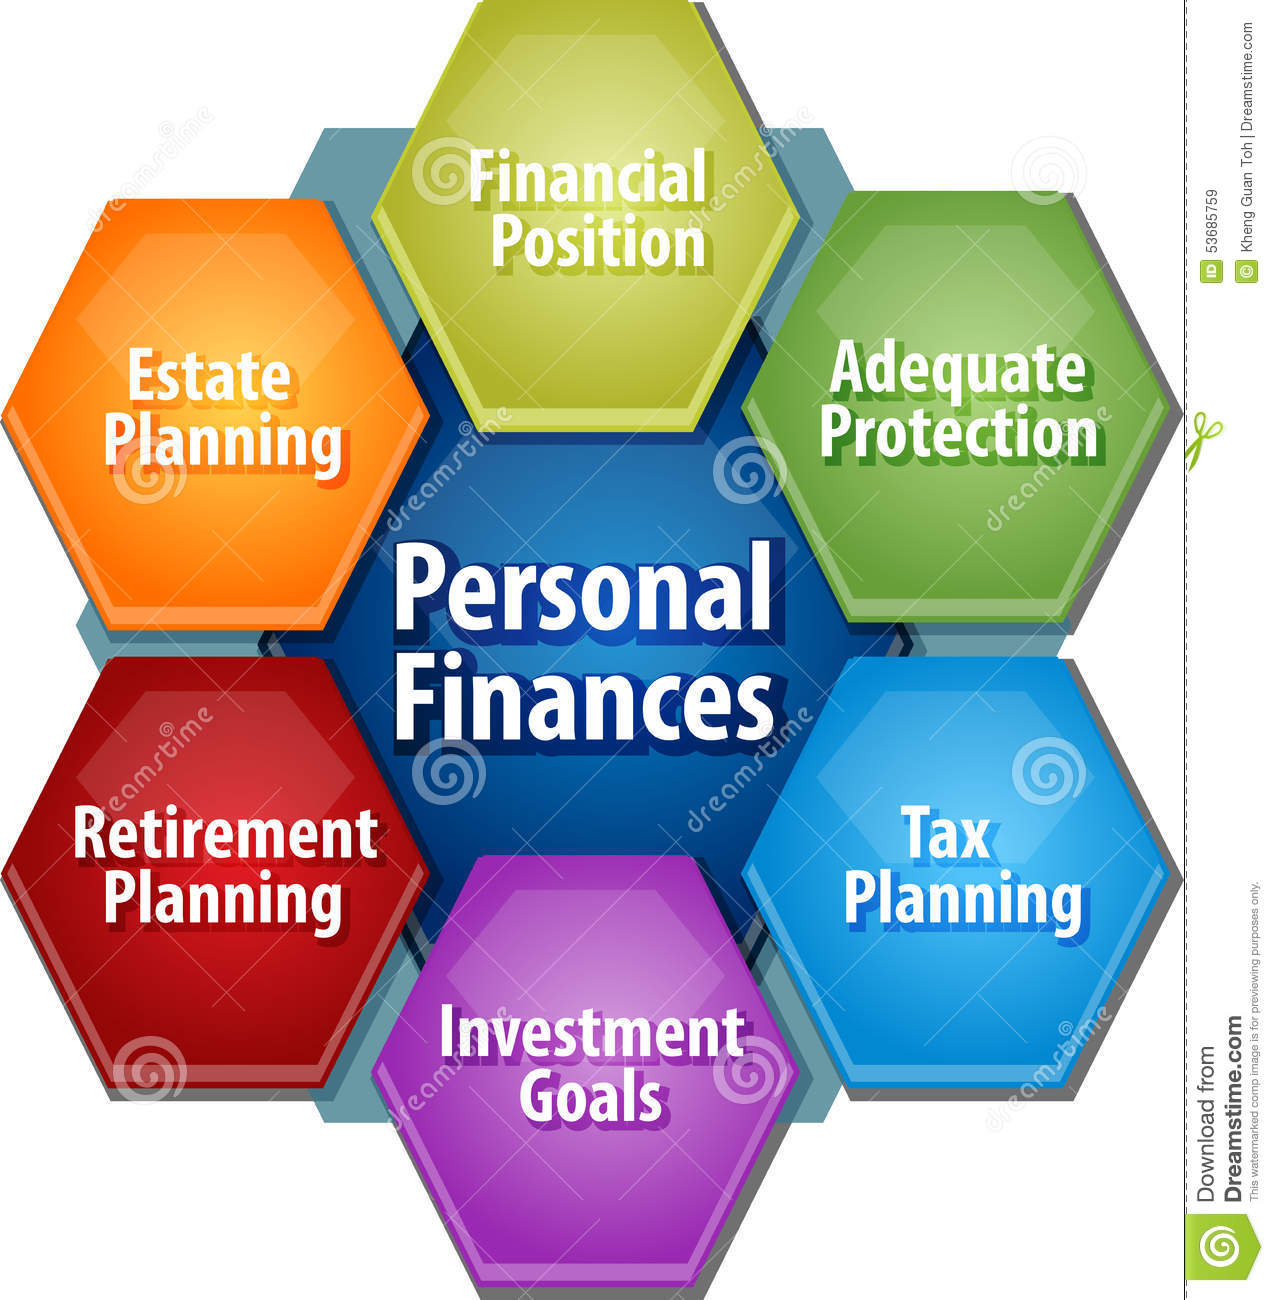 personal-finances-business-diagram-illustration-strategy-concept-infographic-uses-53685759.jpg